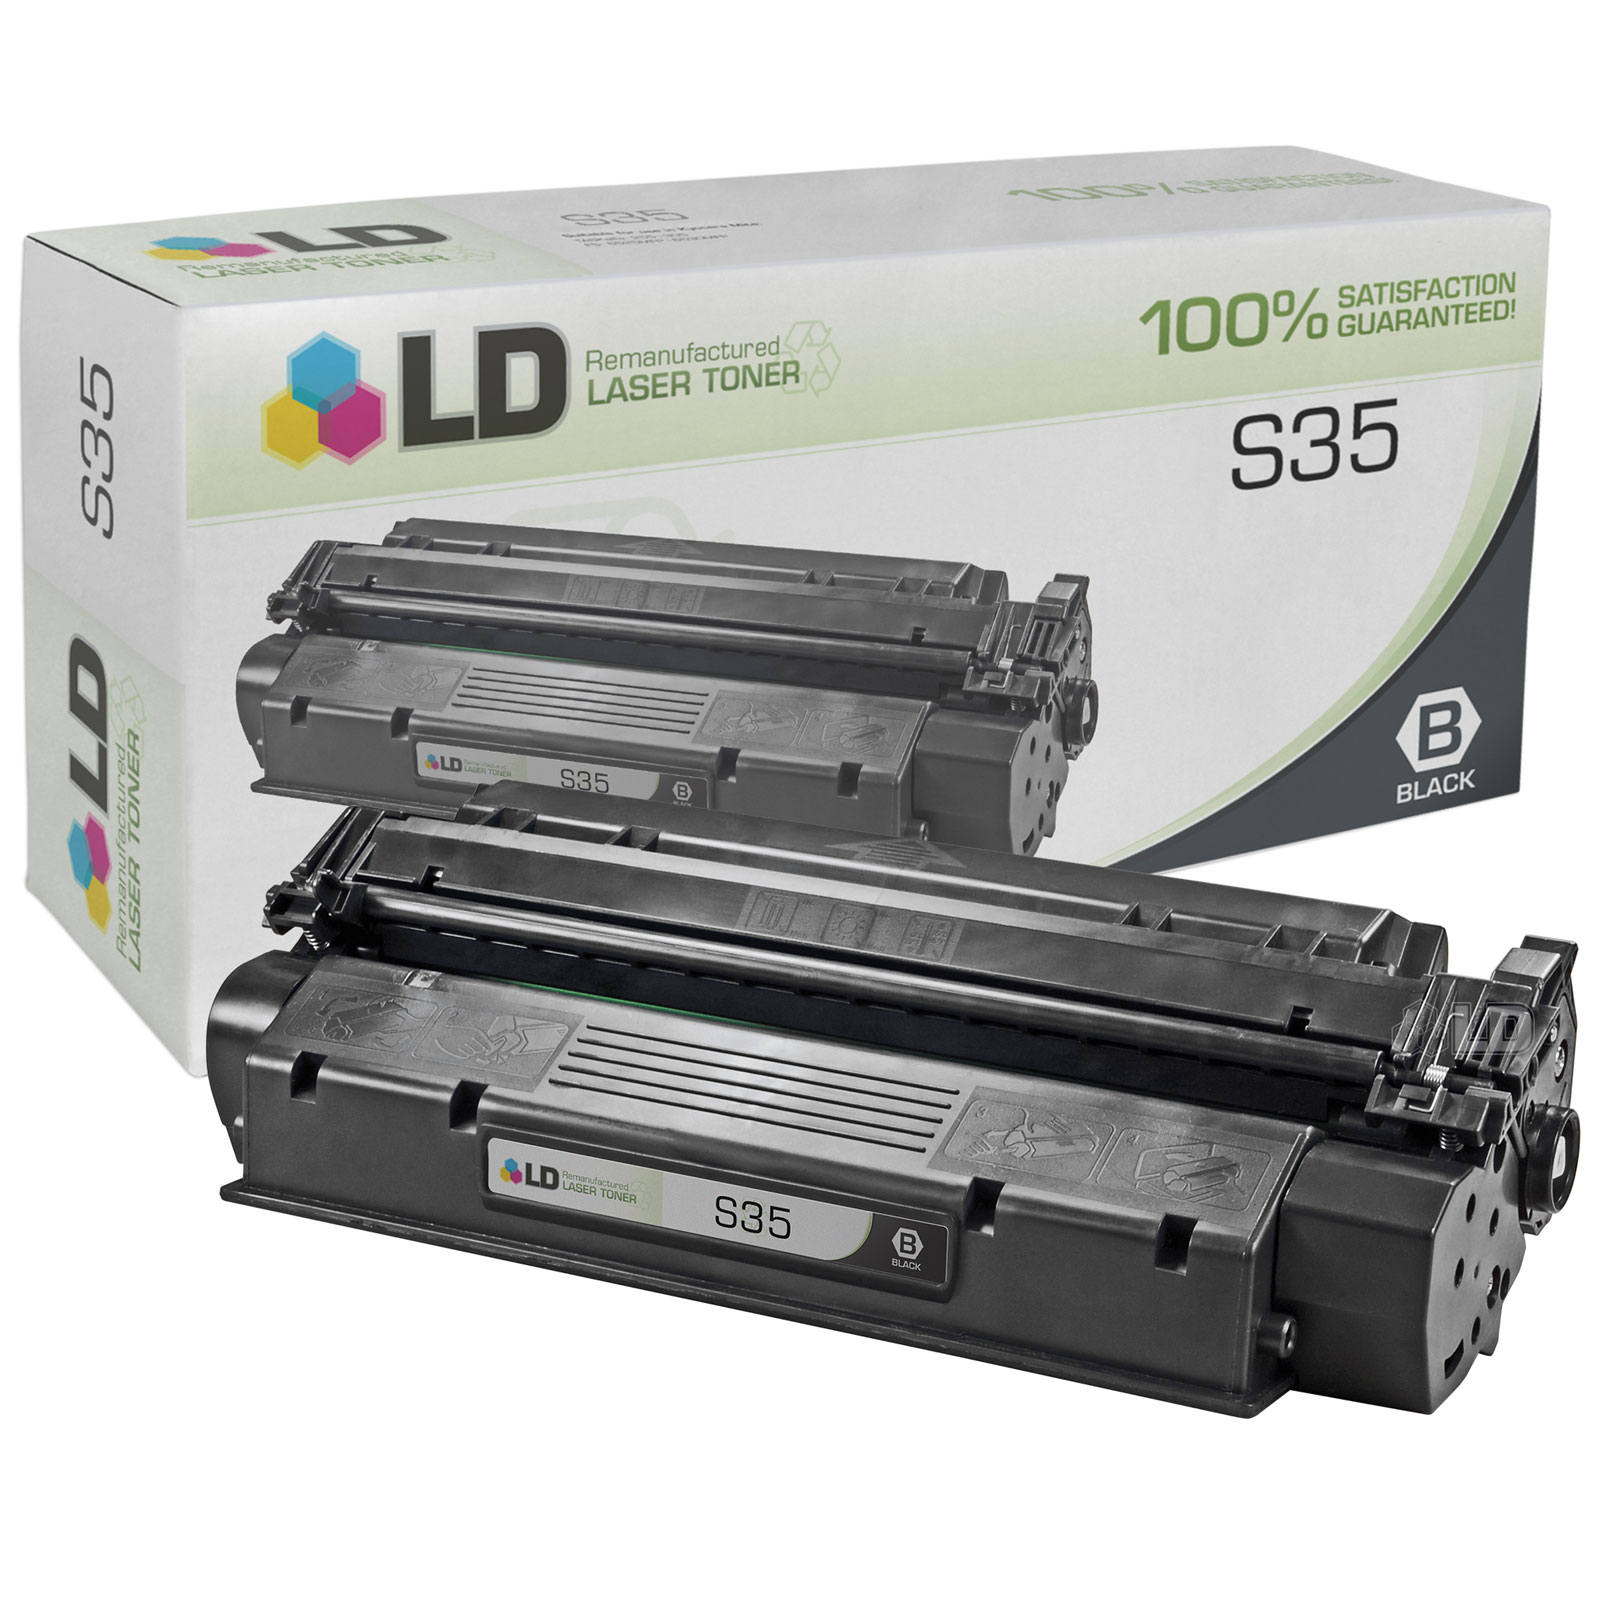 LD Remanufactured Black Laser Toner Cartridge for Canon 7833A001AA (S35) for use in the ICD-340, ImageClass D320, D340,